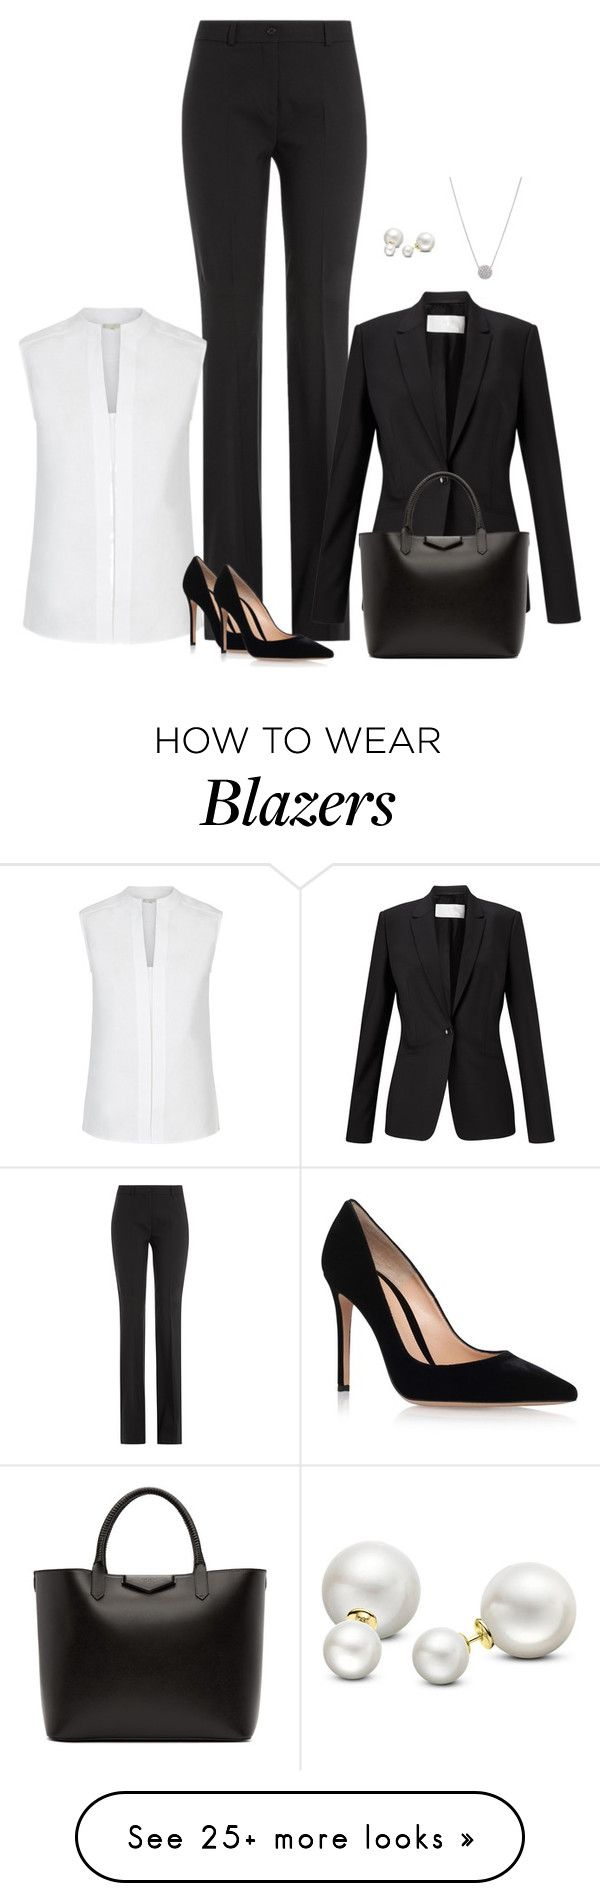 """""""Unbenannt #3875"""" by hitthisfeeling on Polyvore featuring Michael Kors, Hobbs, HUGO, Gianvito Rossi, Givenchy and Allurez"""